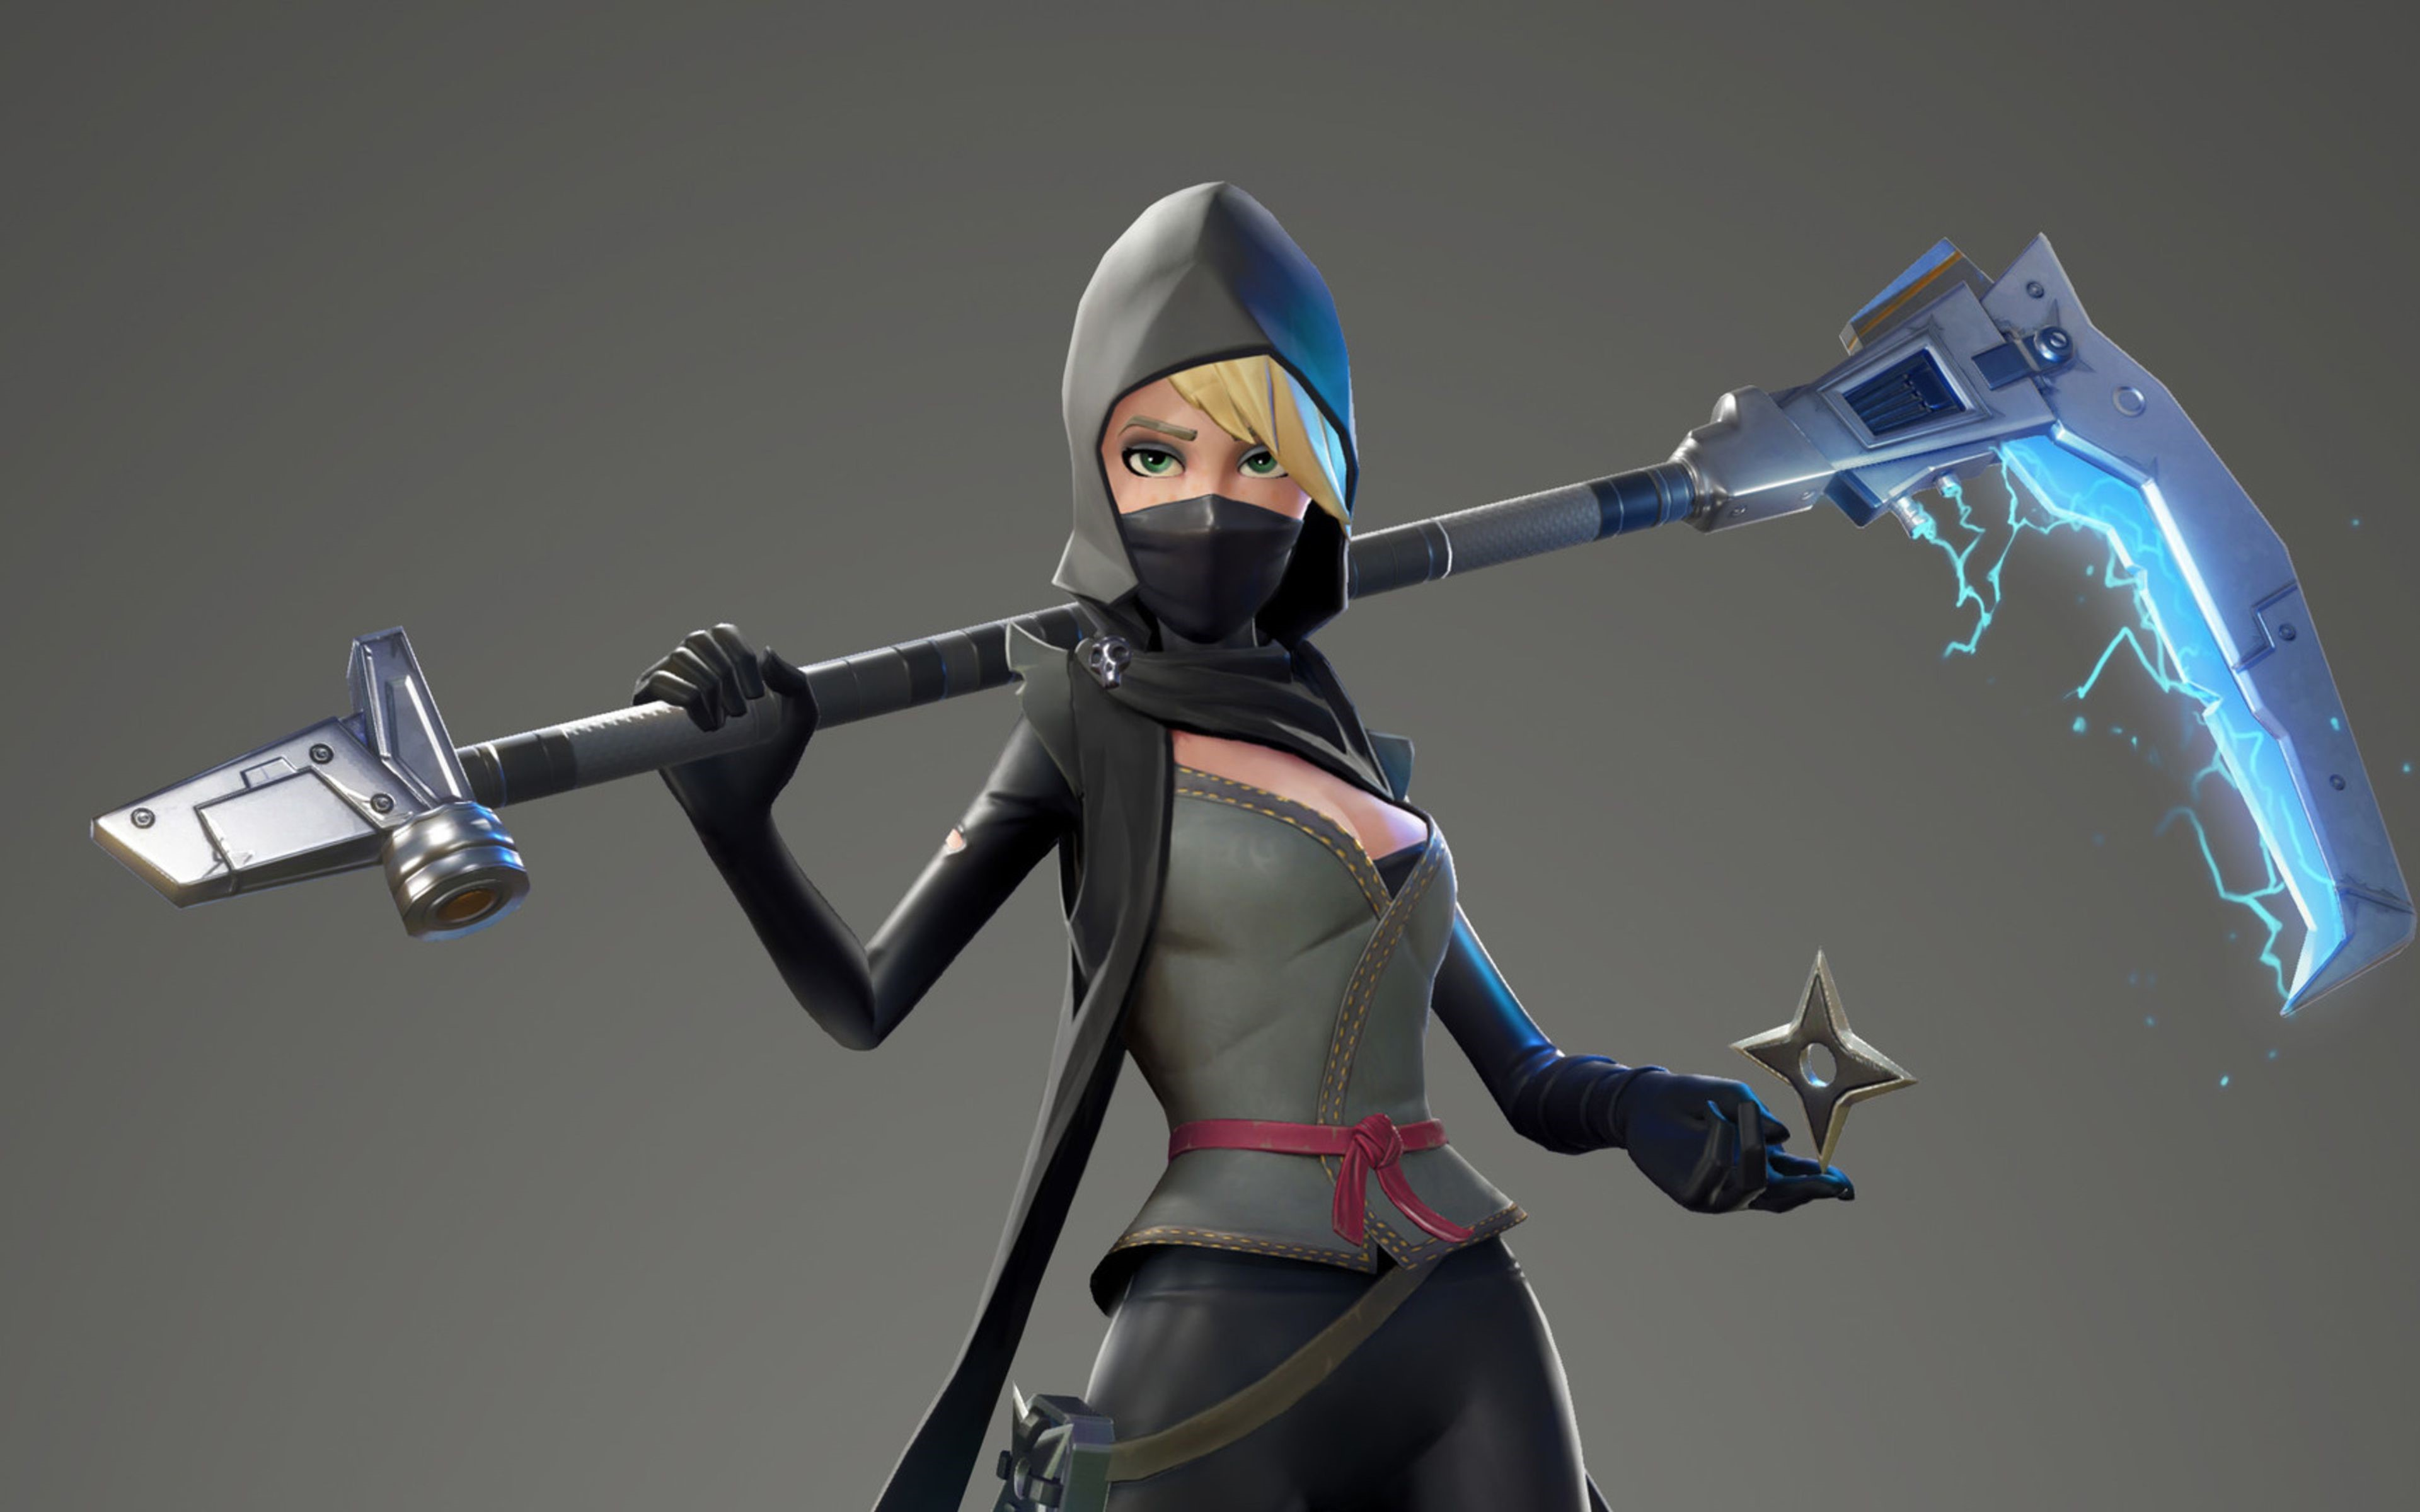 Fortnite Scythe Ninja Full HD Wallpaper